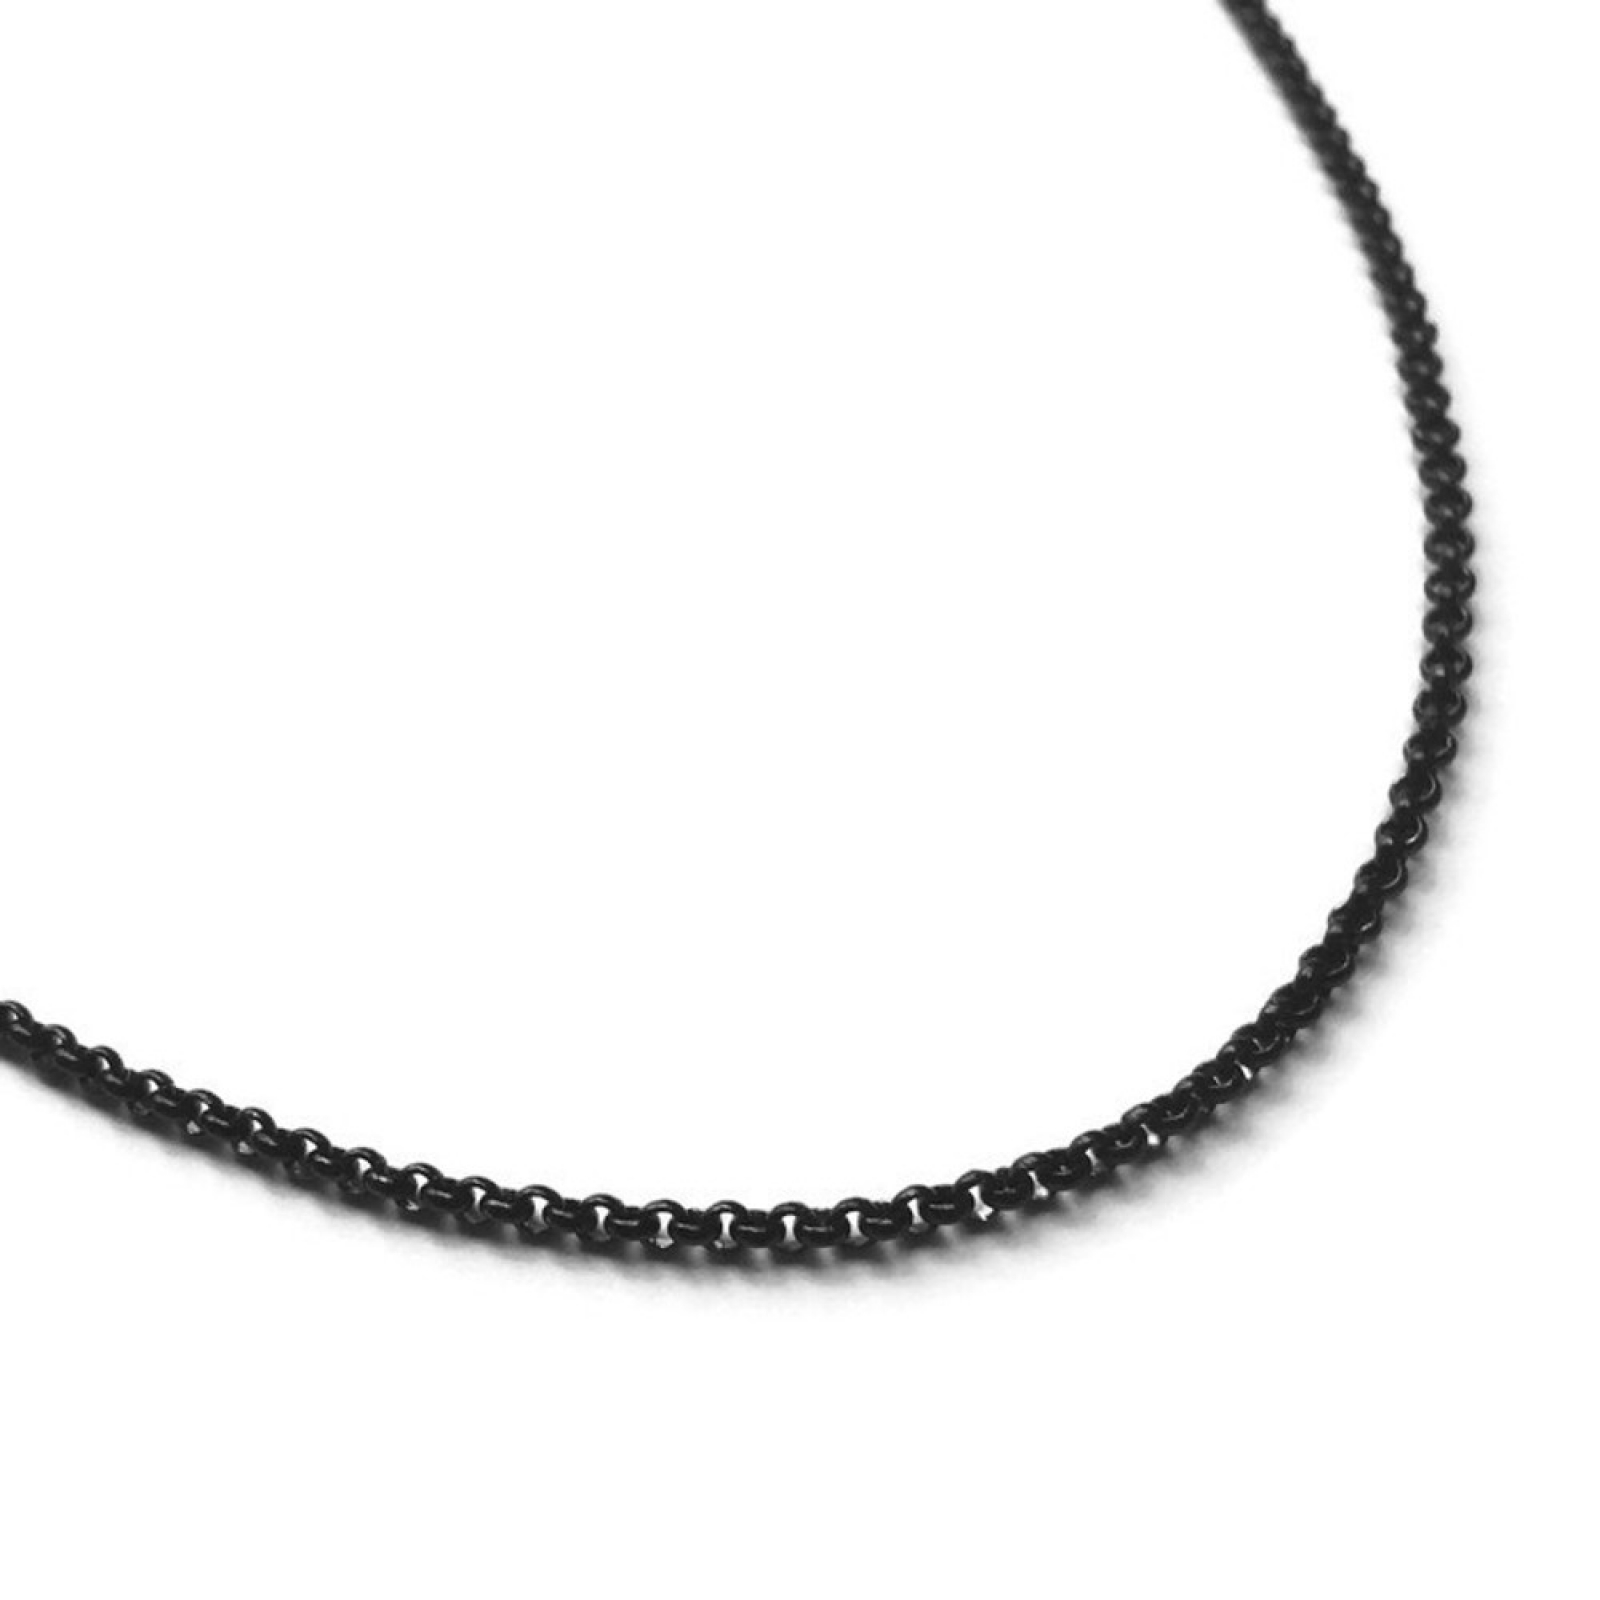 design inches style stainless punk thin chain easy jewelry steel womens product accessory black layering rolo necklace